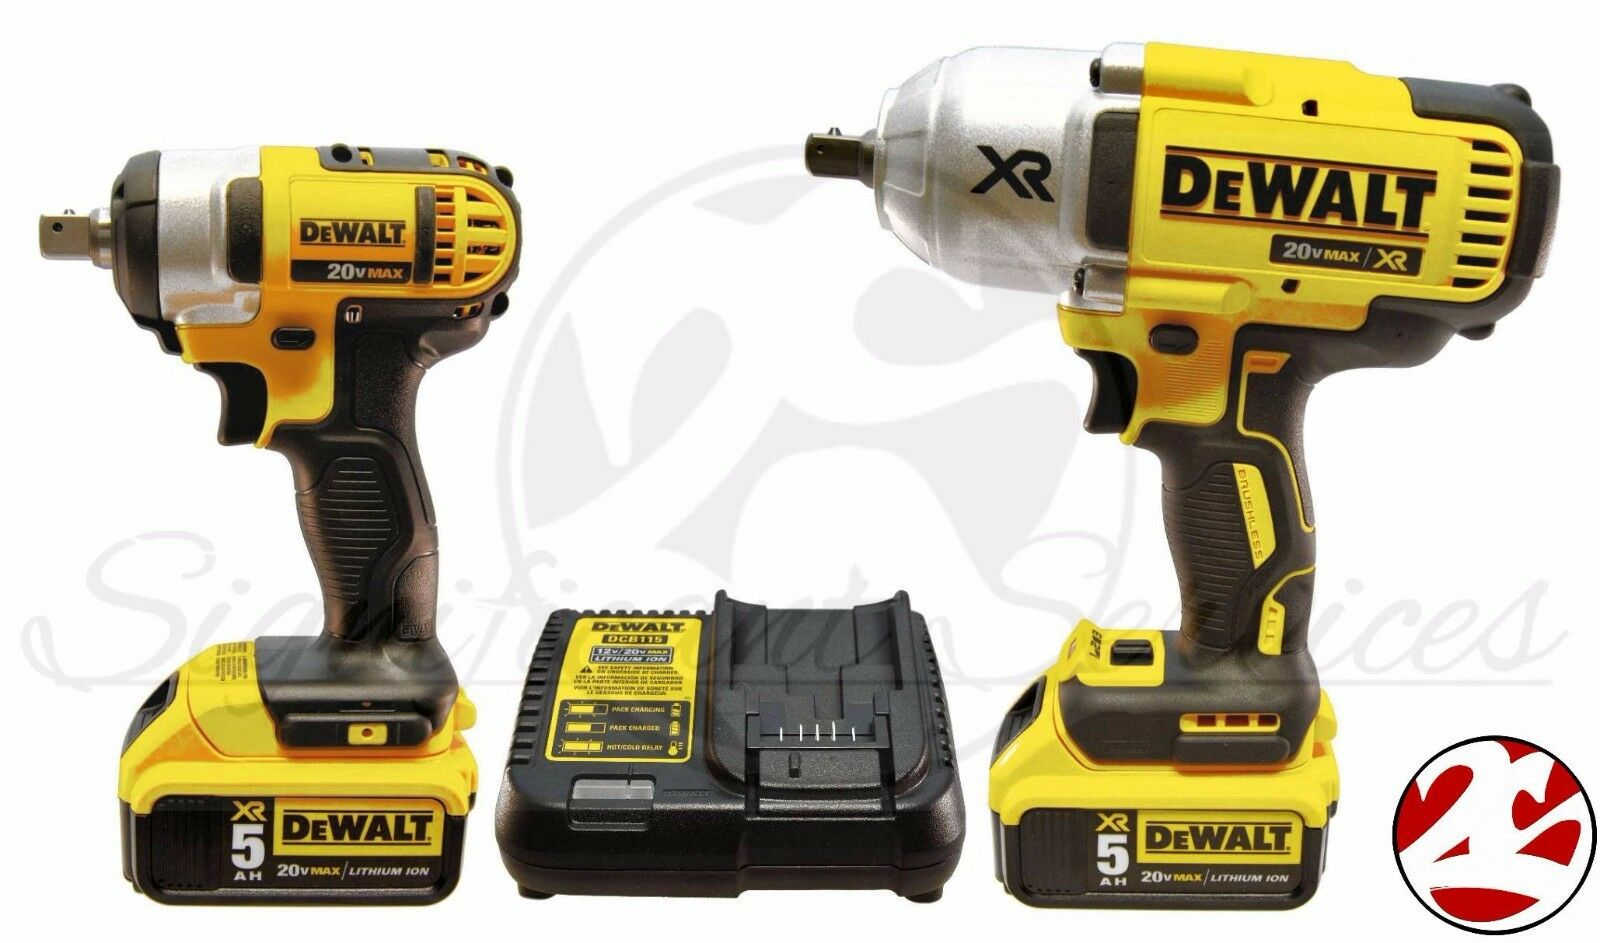 Dewalt dck398hm2 20v max brushless high torque impact for Dewalt 20v brushless motor